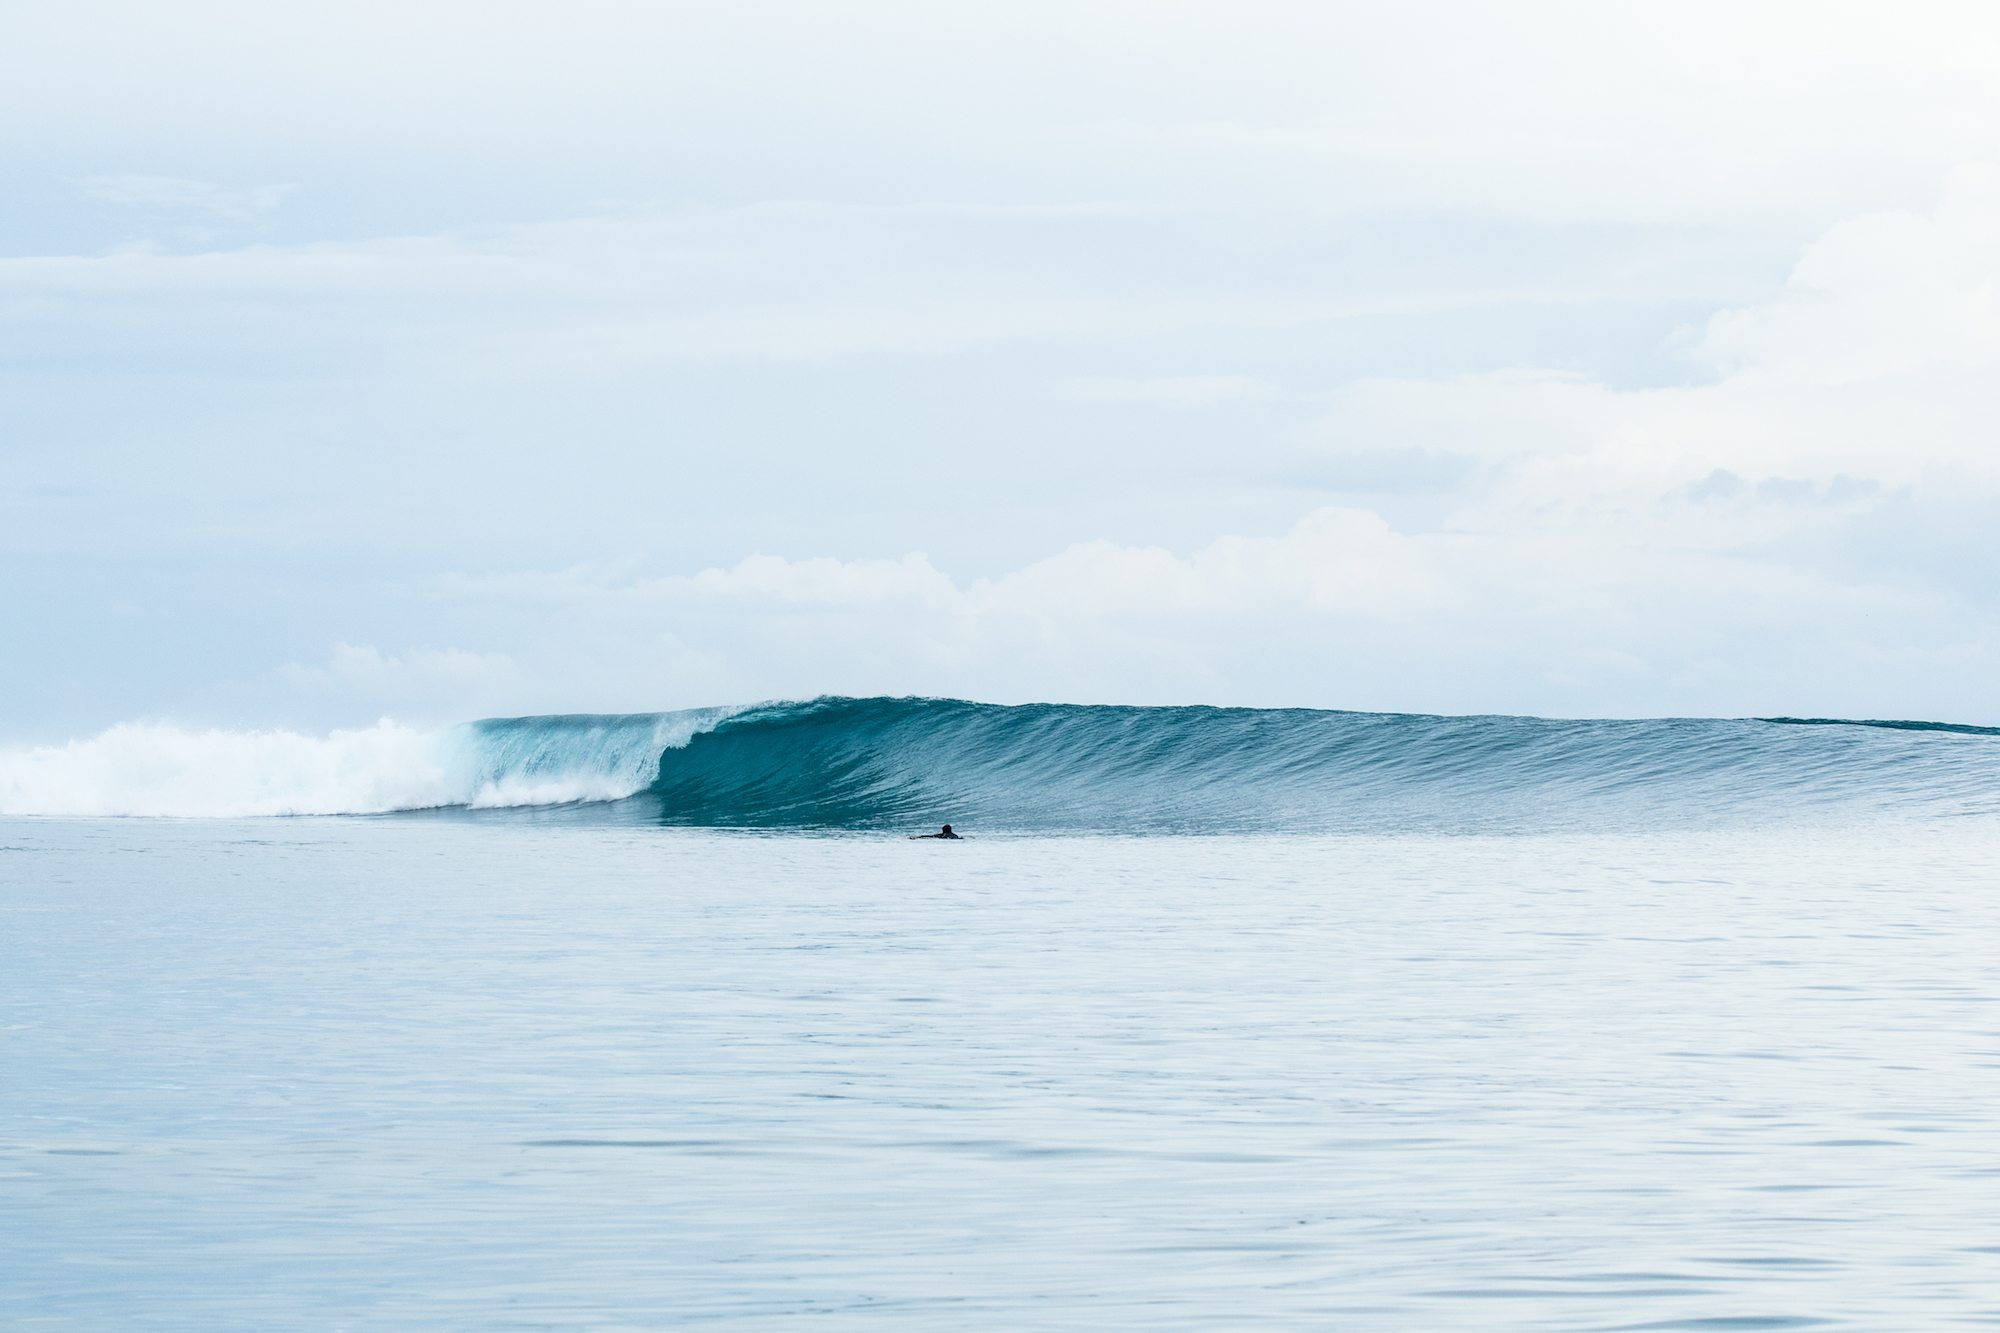 very nice plunging wave, surf banyak